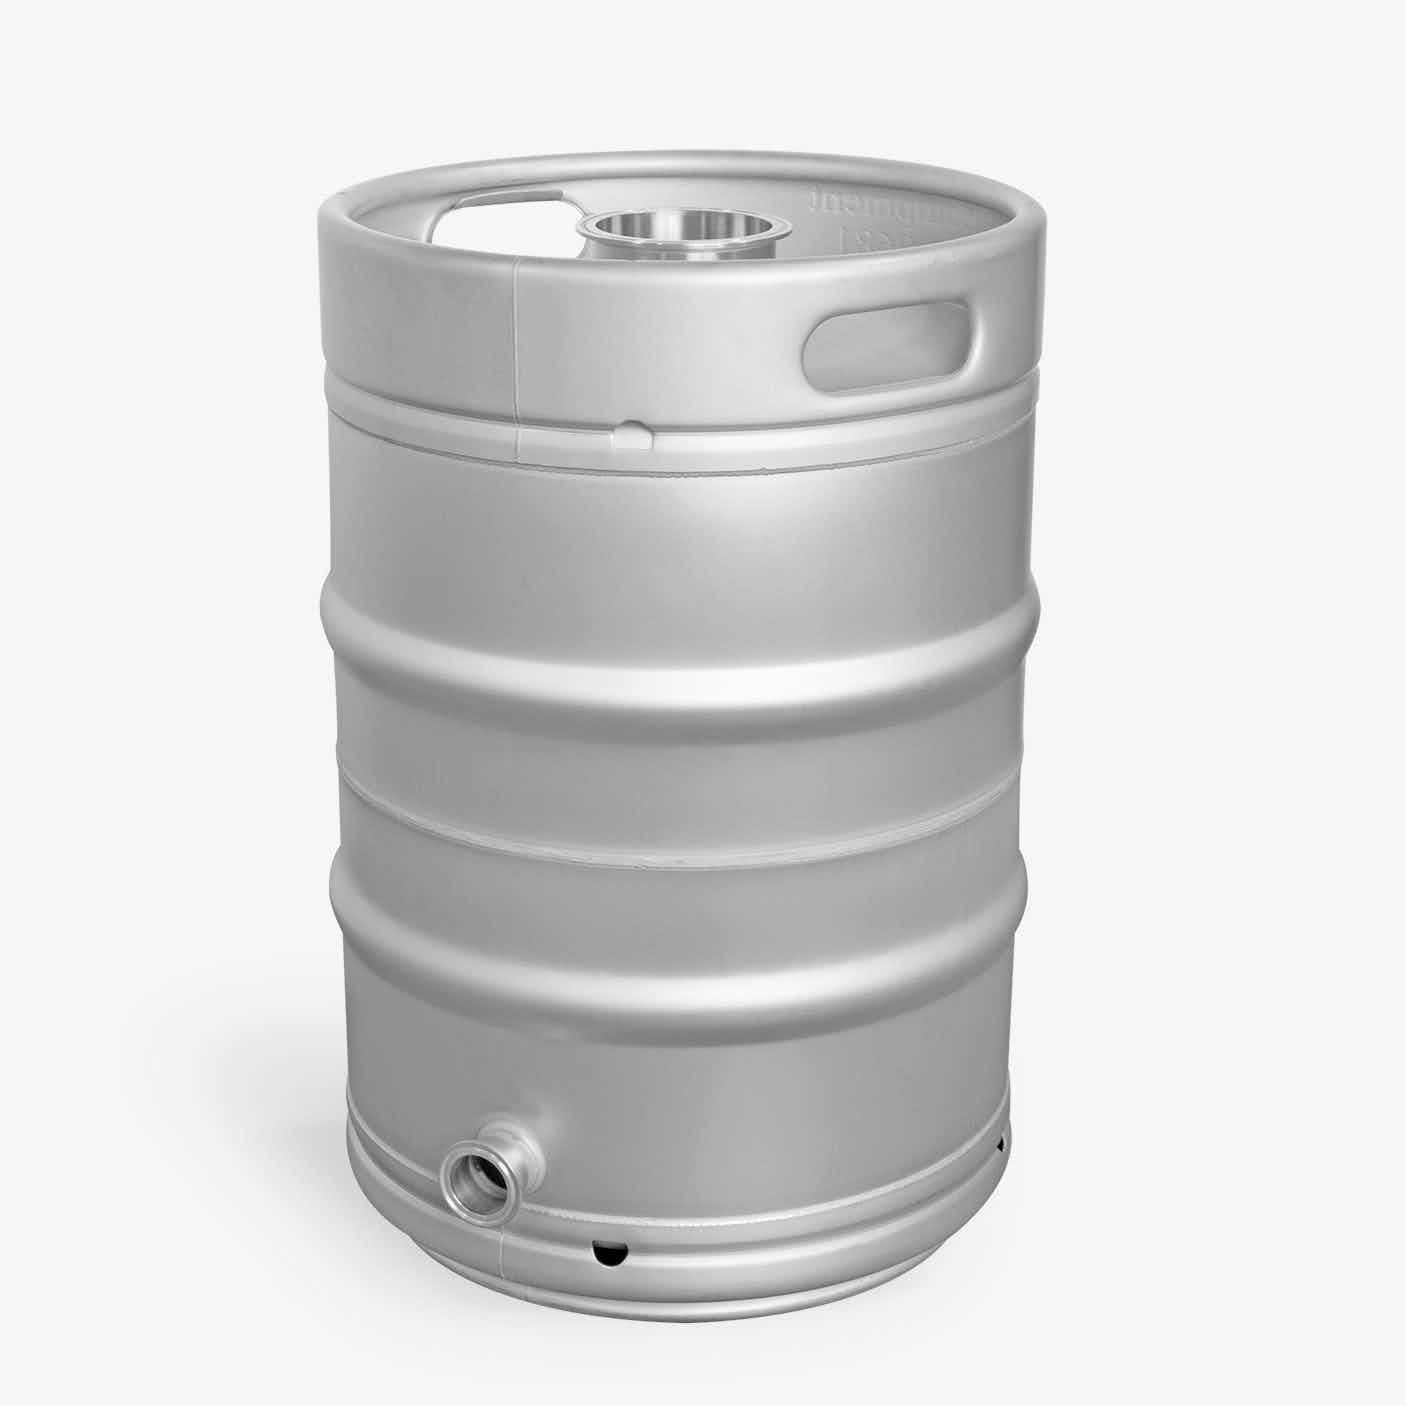 Categories - Tanks, Kegs, & Stainless Steel Storage - TCW Equipment